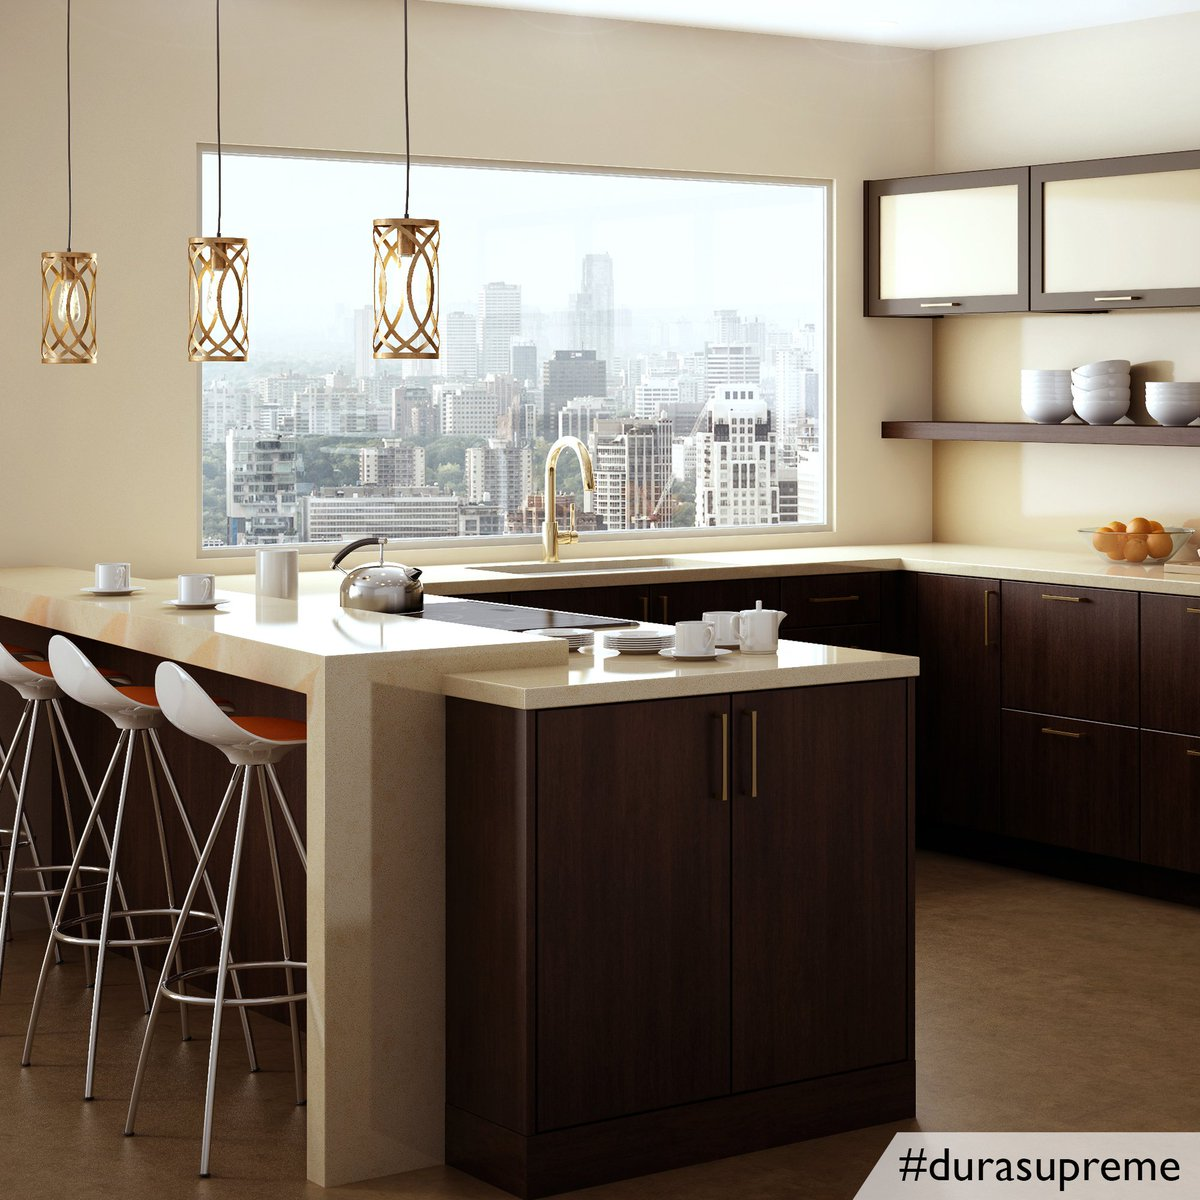 Dura Supreme Cabinetry On Twitter One